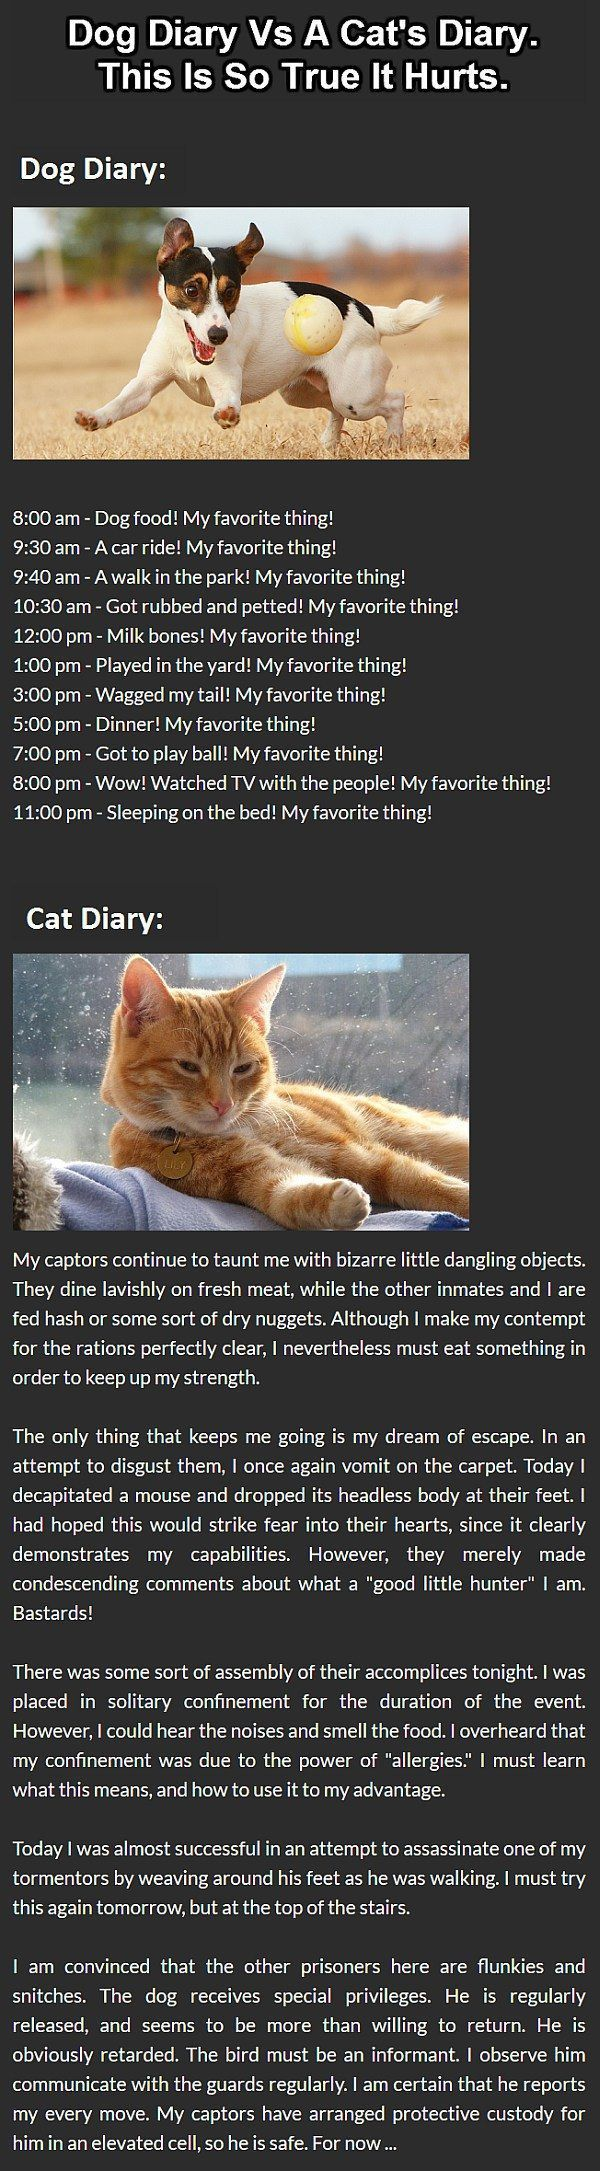 When you come to think about it, dog vs. cat diaries, got us thinking #dogsvscats